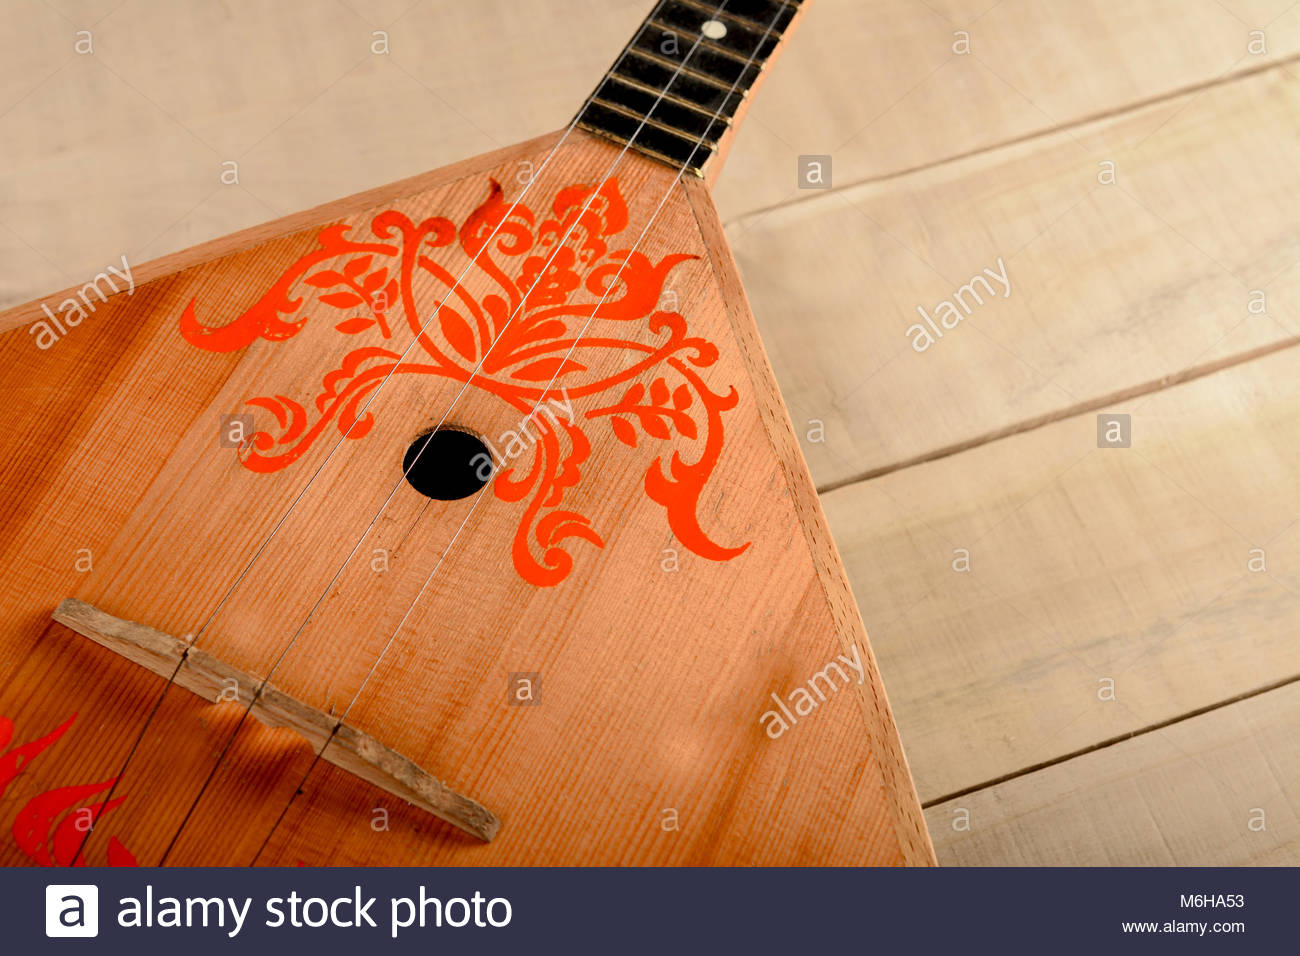 Photo Russian musical instrument balalaika on a wooden table - Stock Image